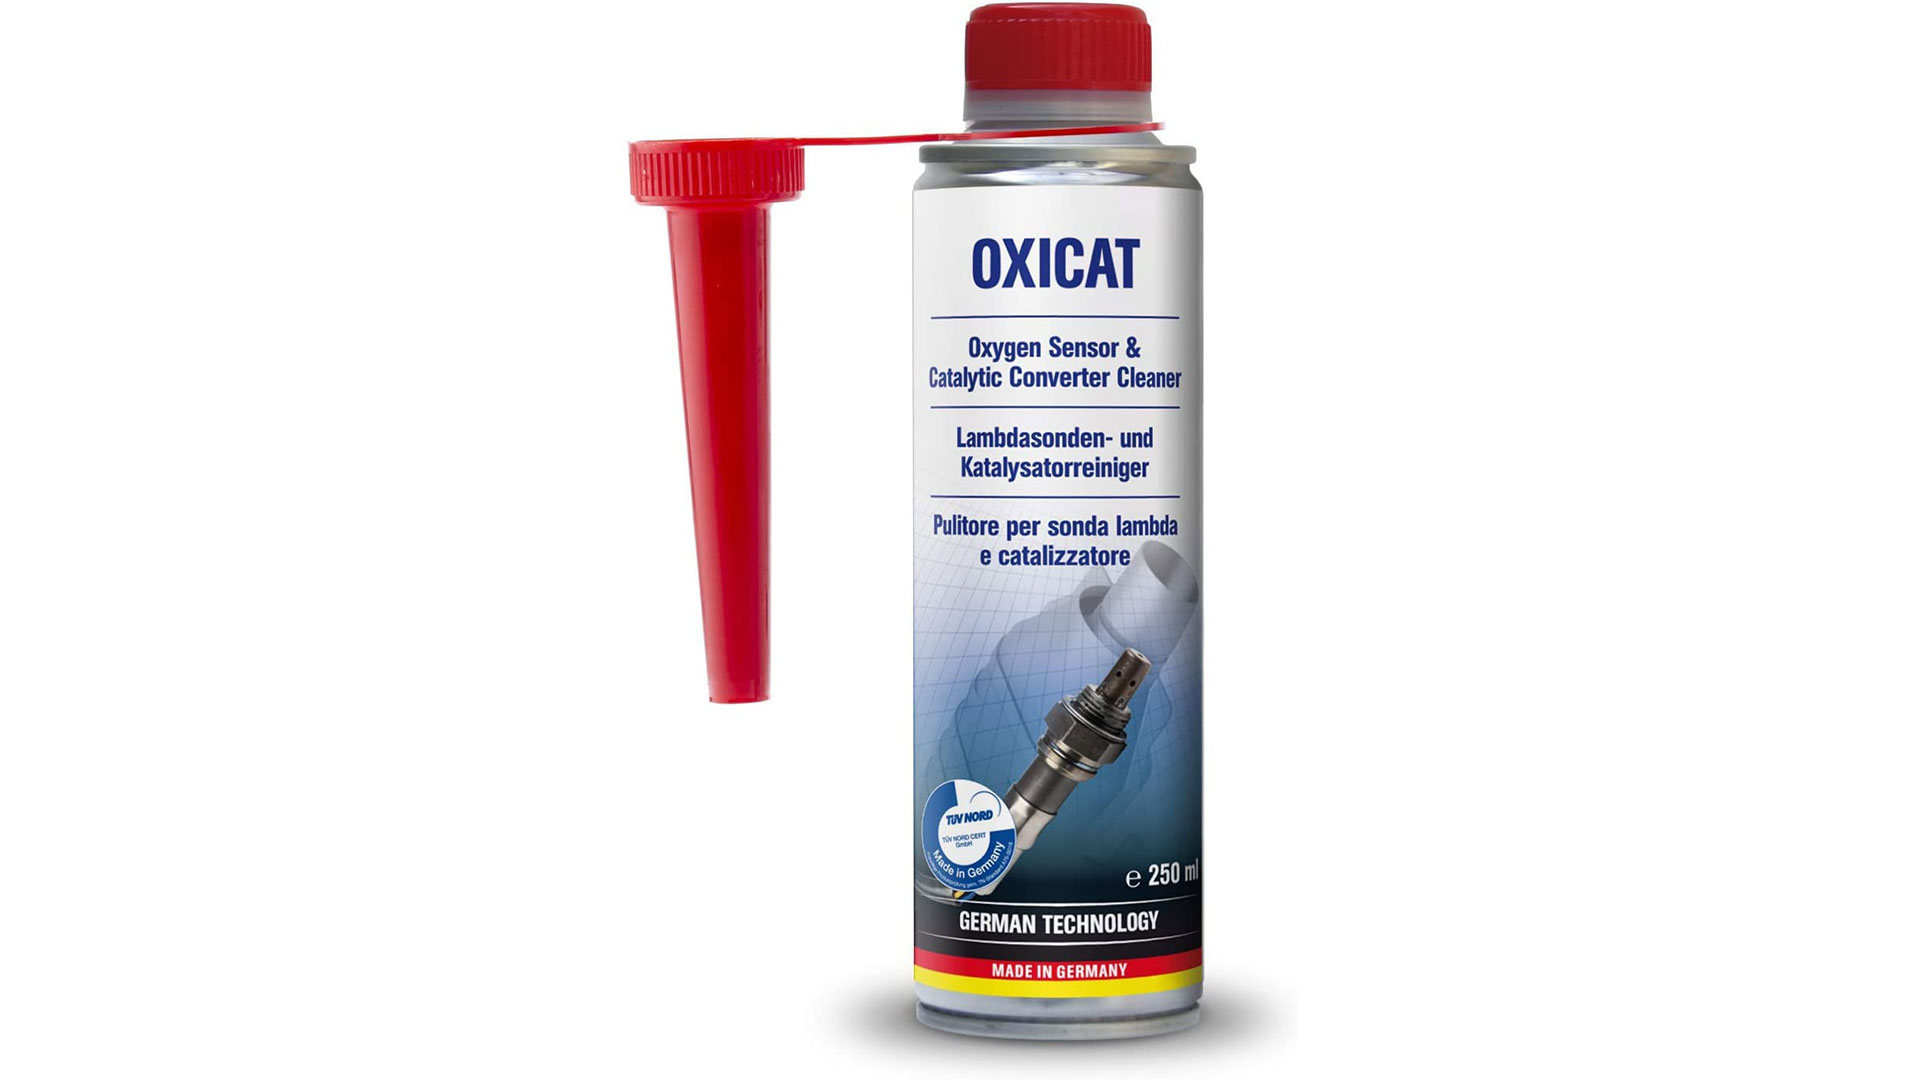 oxicat o2 sensor catalytic converter cleaner